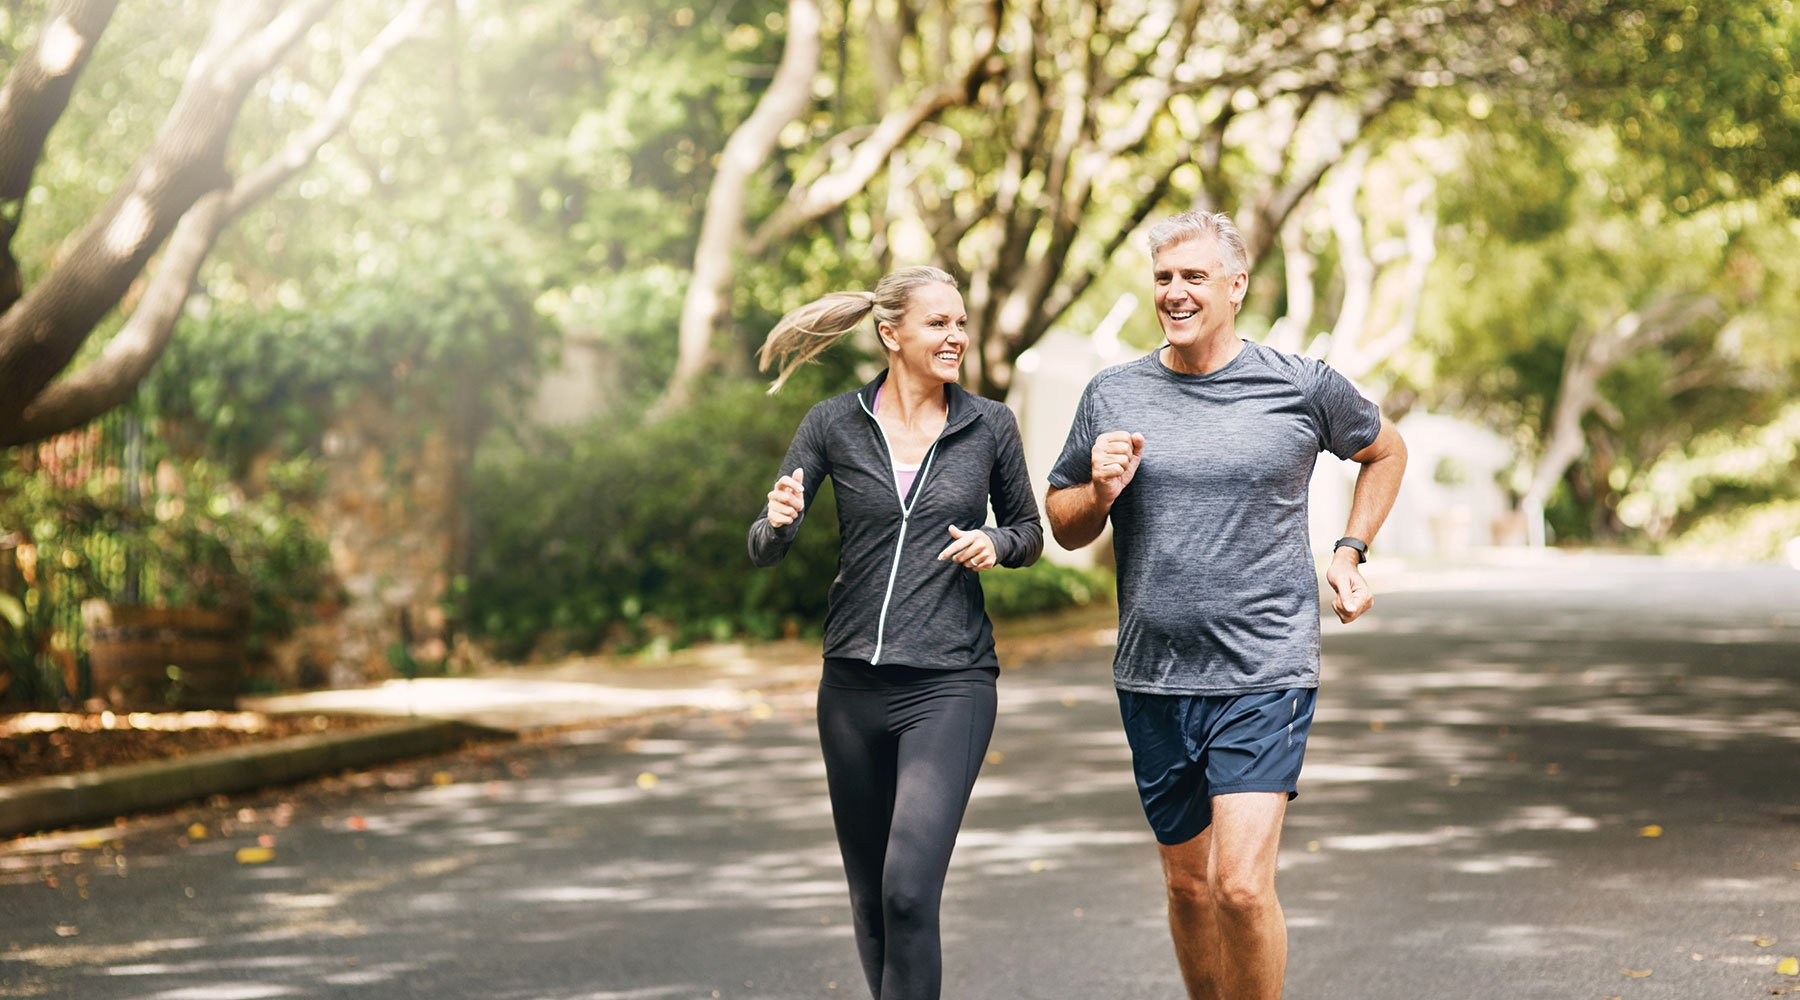 A middle-aged couple running together to keep fit